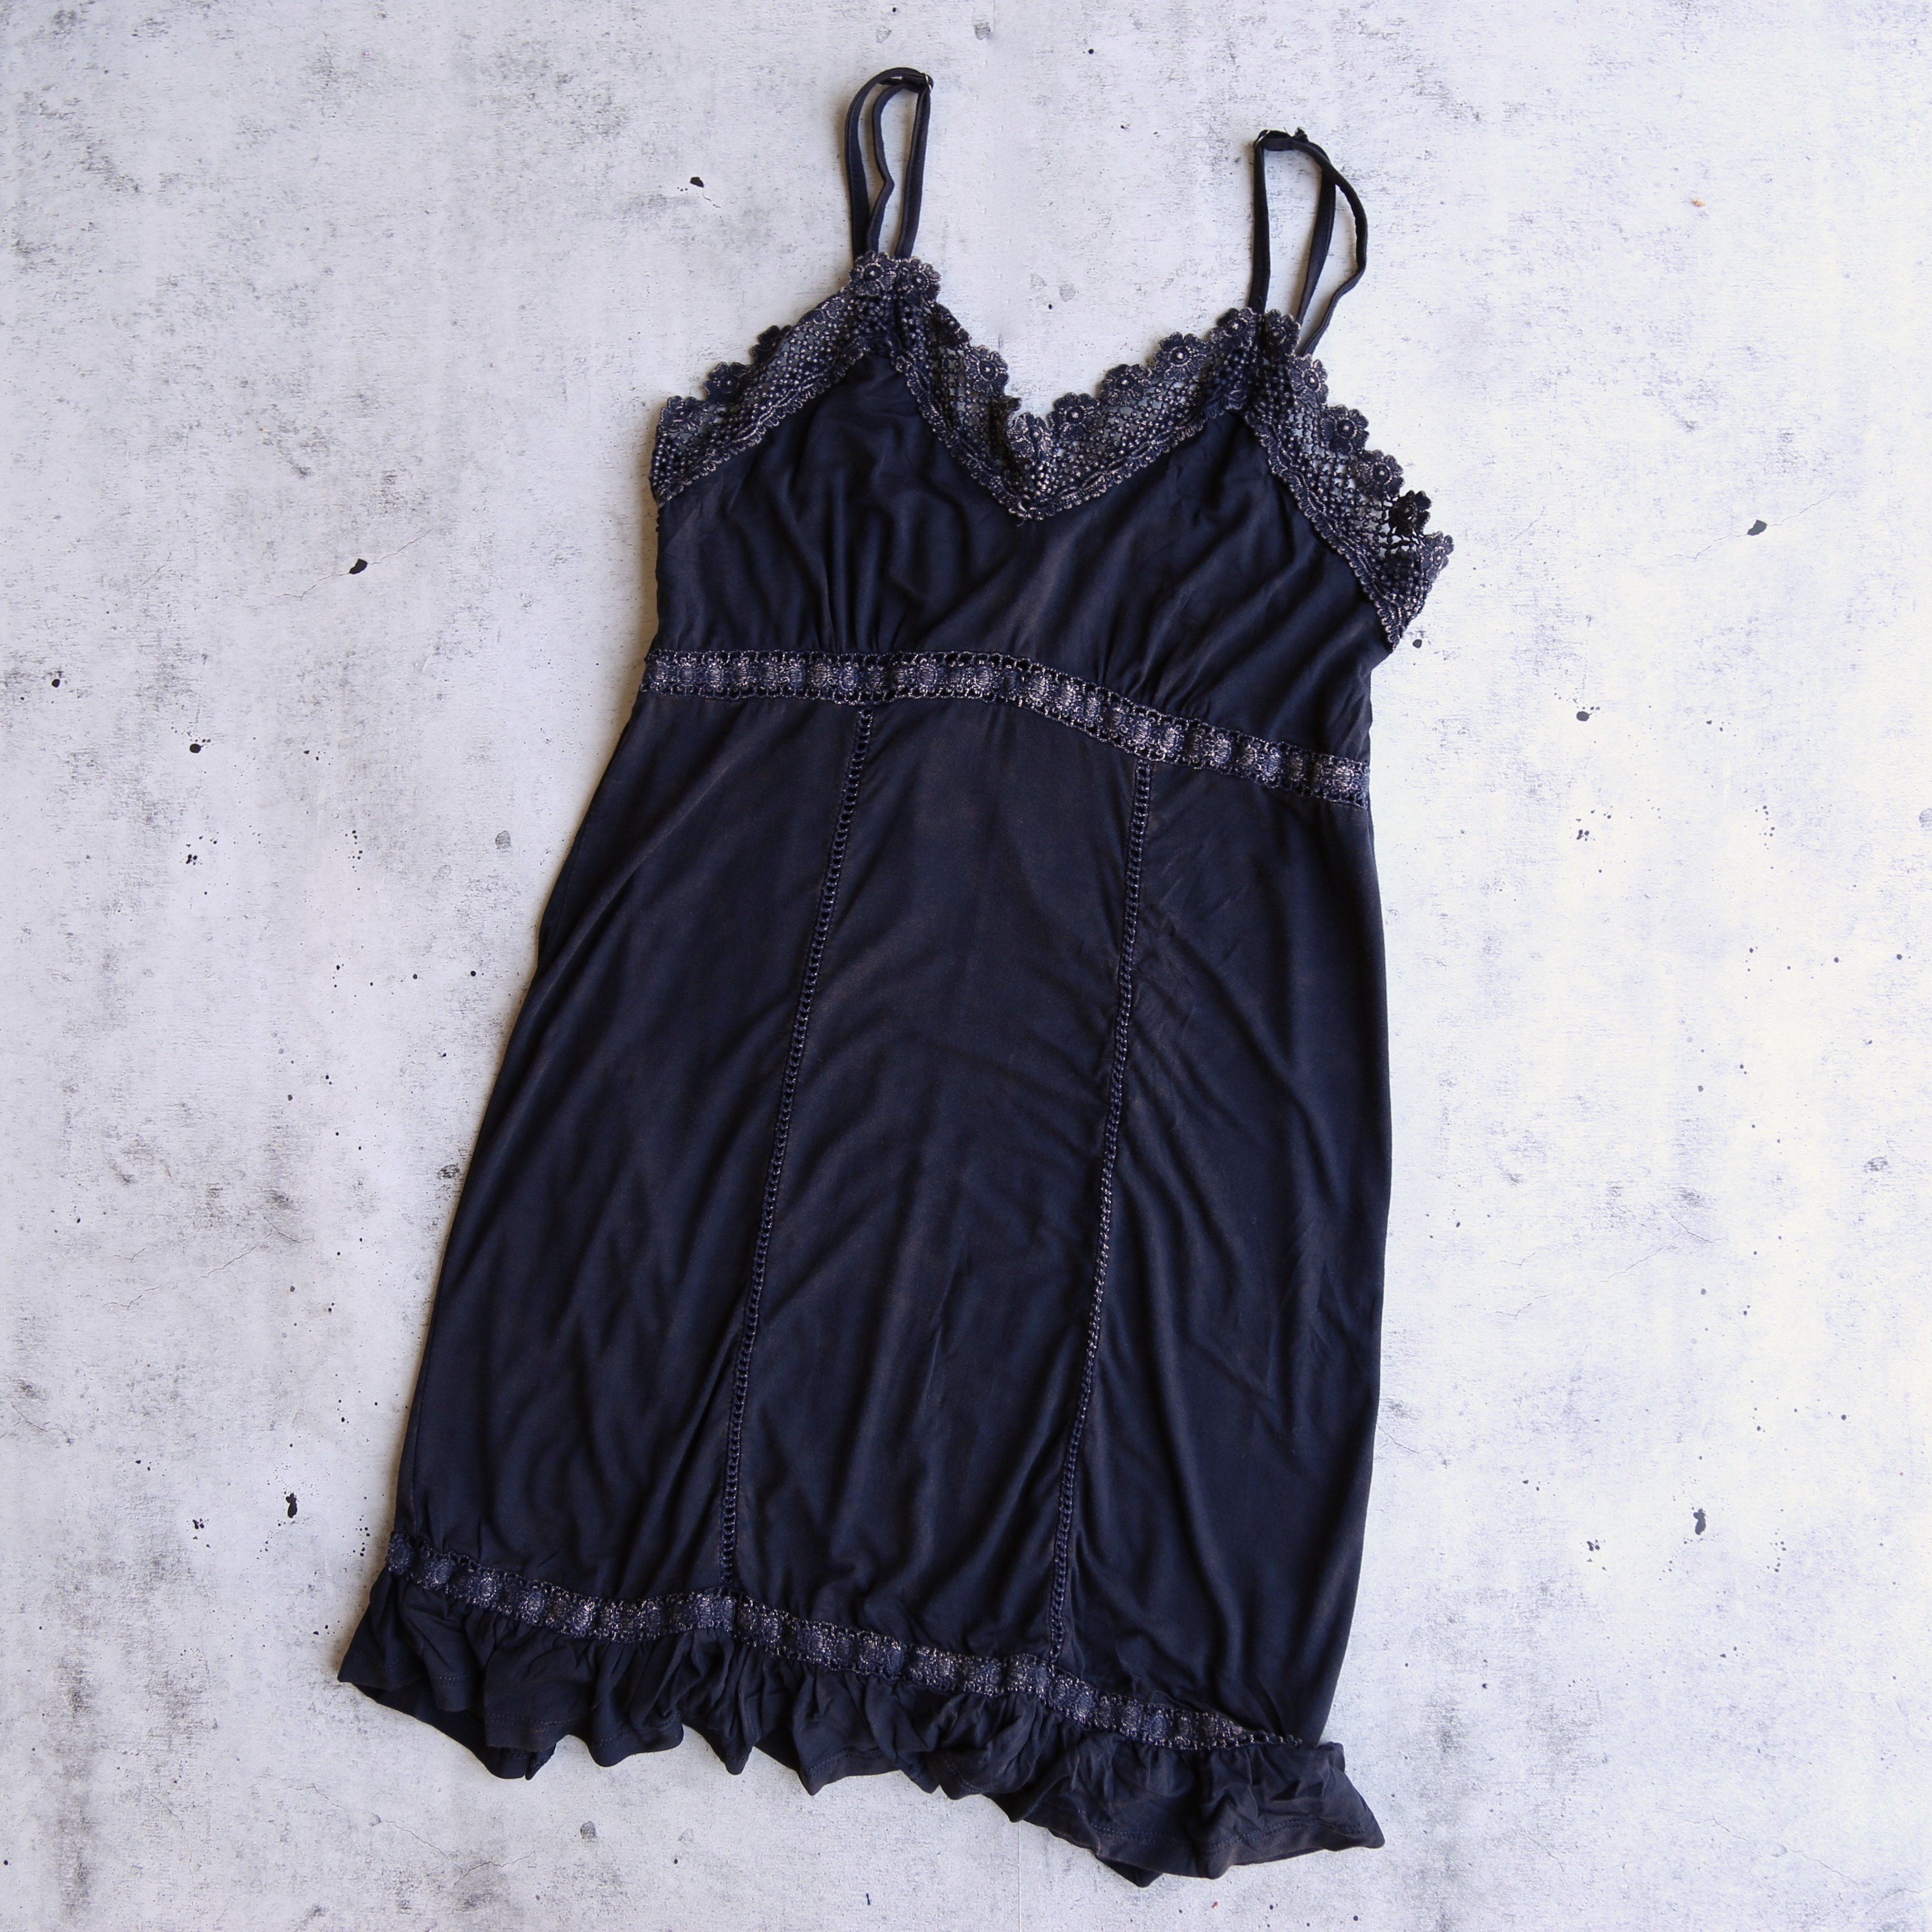 Image of Final Sale - POL BSIC - Acid Wash Dress With Crochet Lace Insets - More Colors